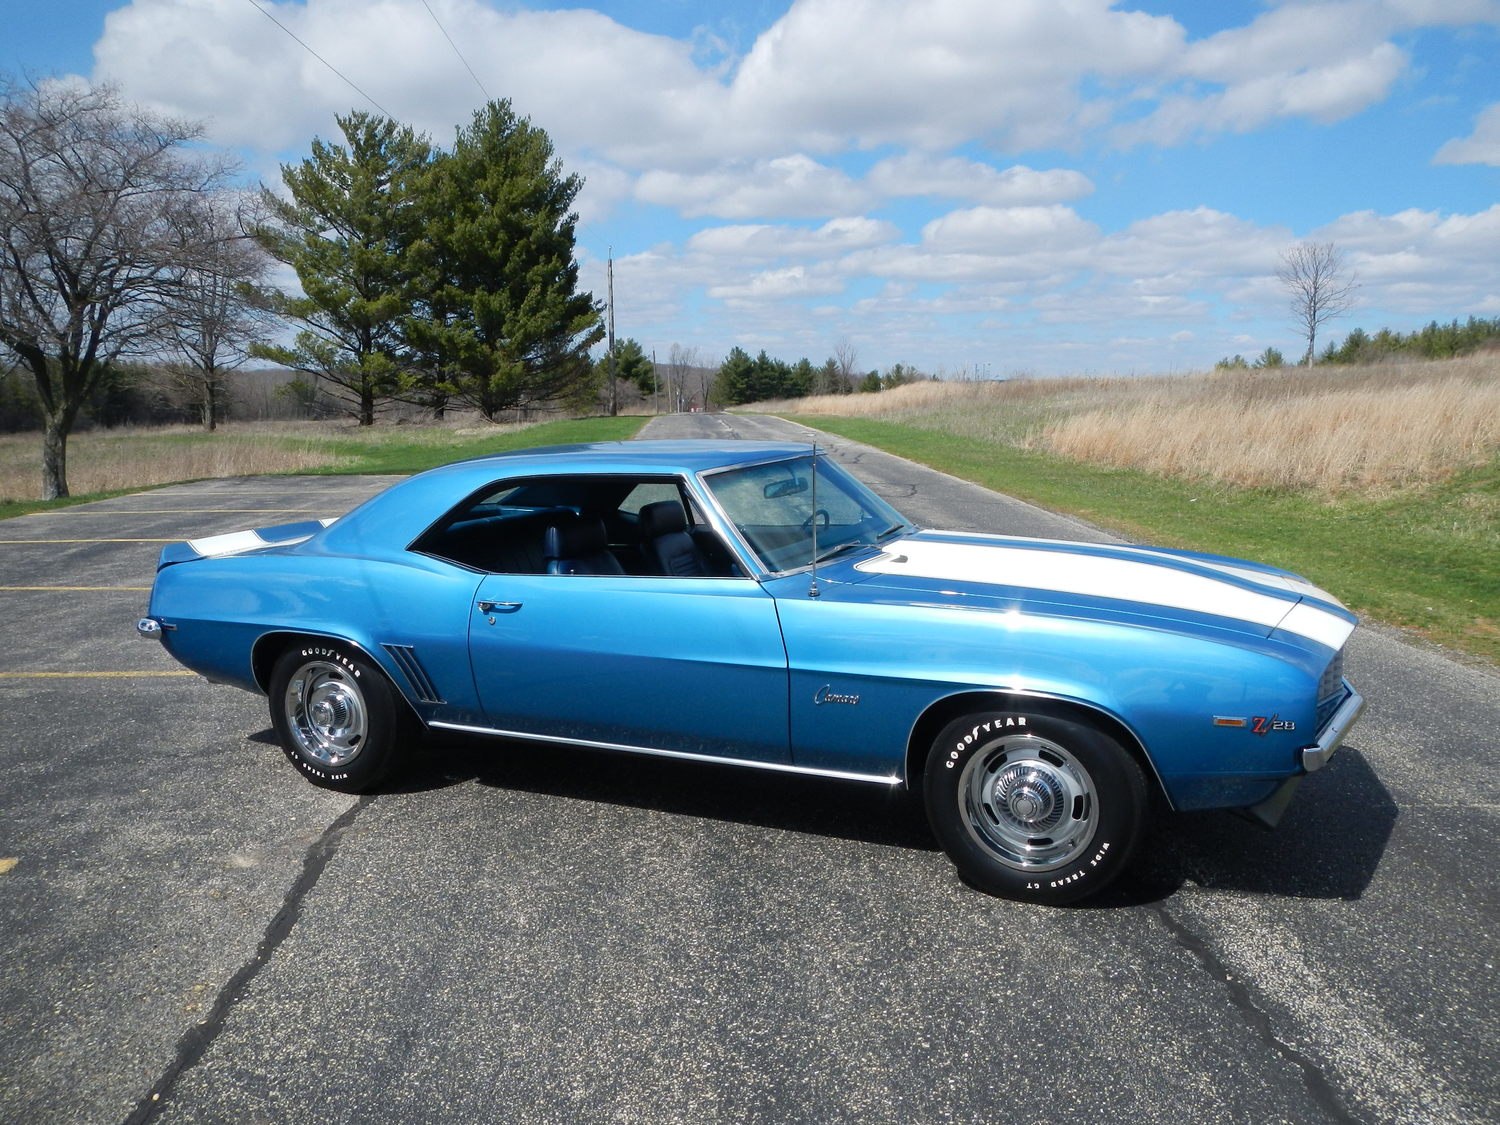 Muscle Cars — High Octane Performance Cars